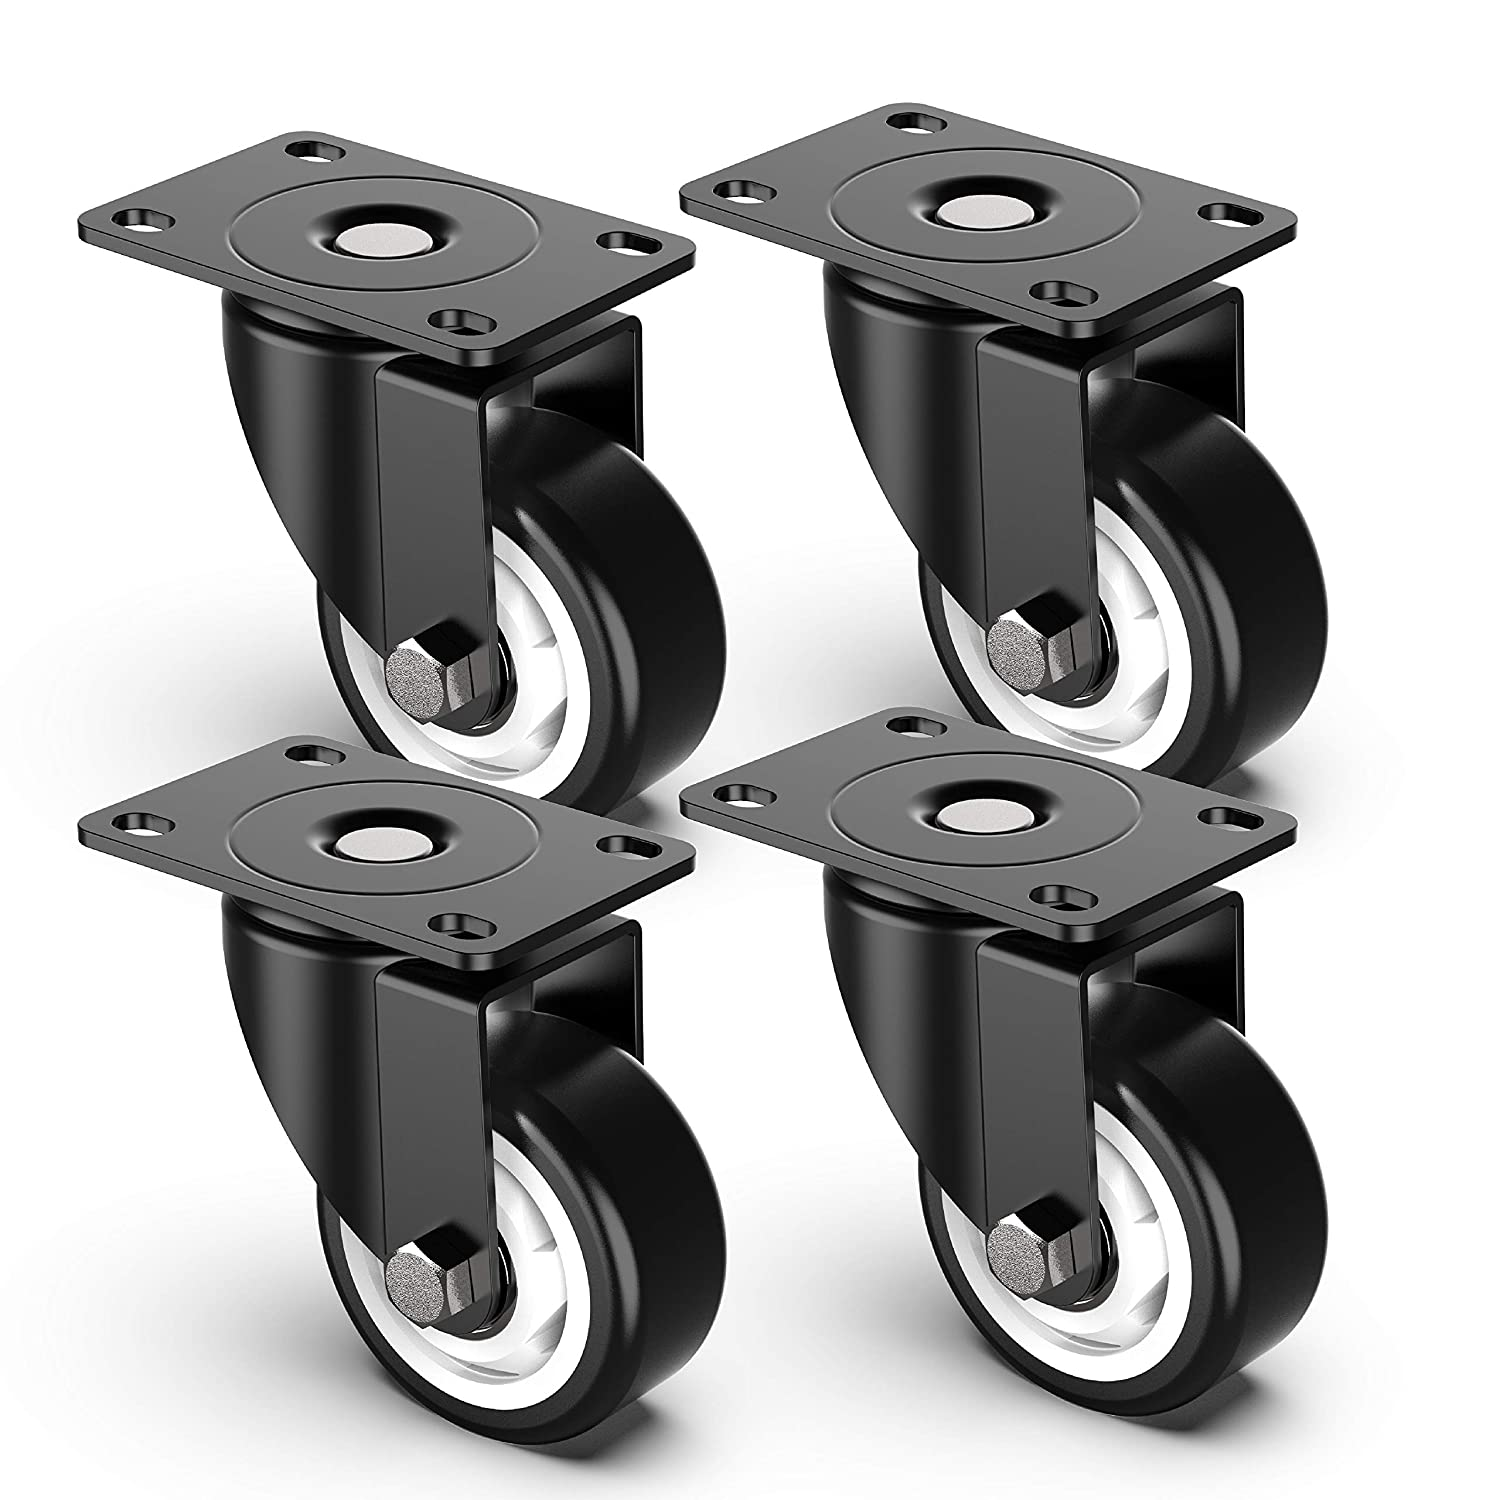 3 inch Swivel Caster Wheels, Heavy Duty Plate Casters with no Brakes Total Capacity 1000lbs (pack of 4)